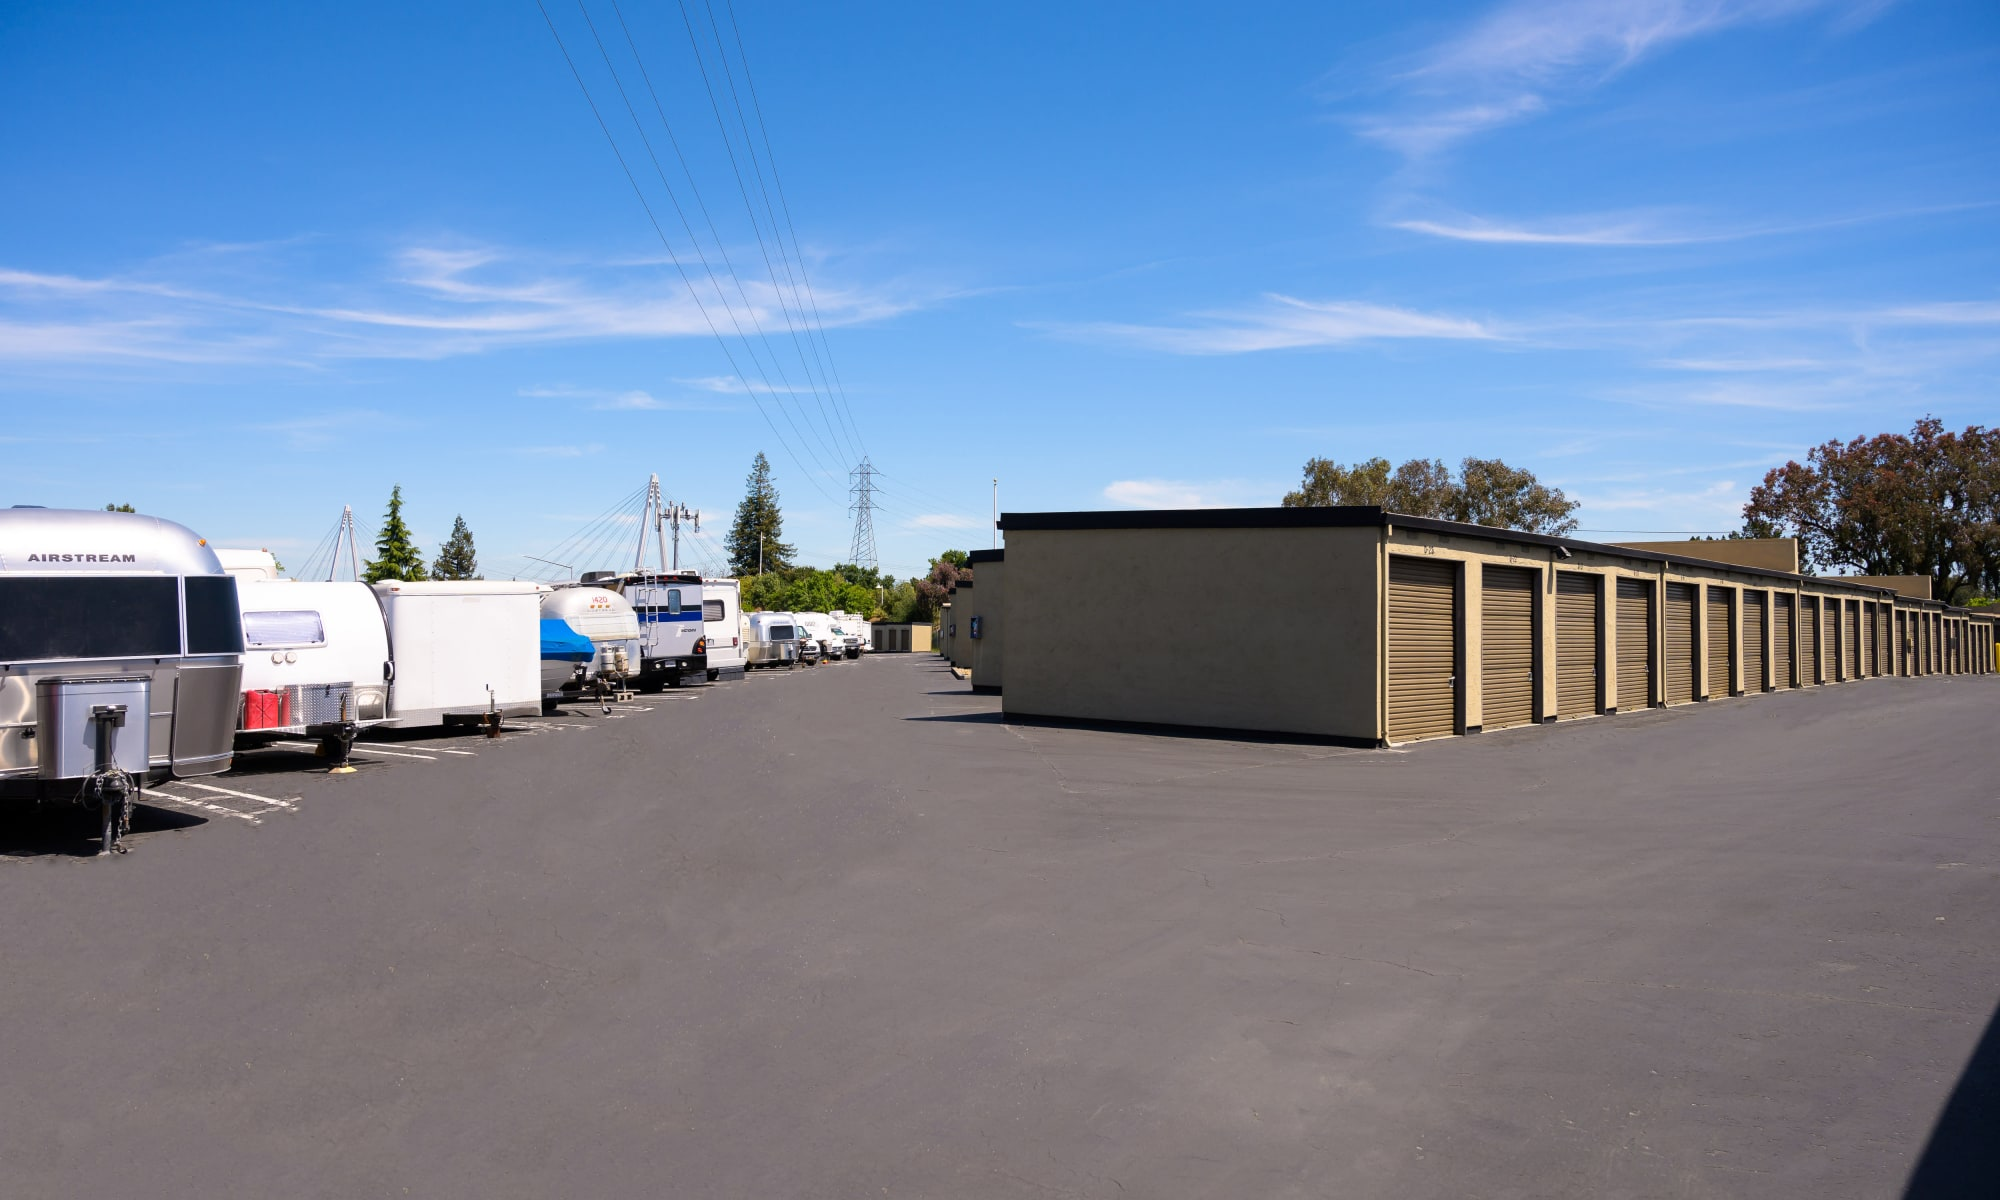 Bay Area Self Storage in Cupertino, California